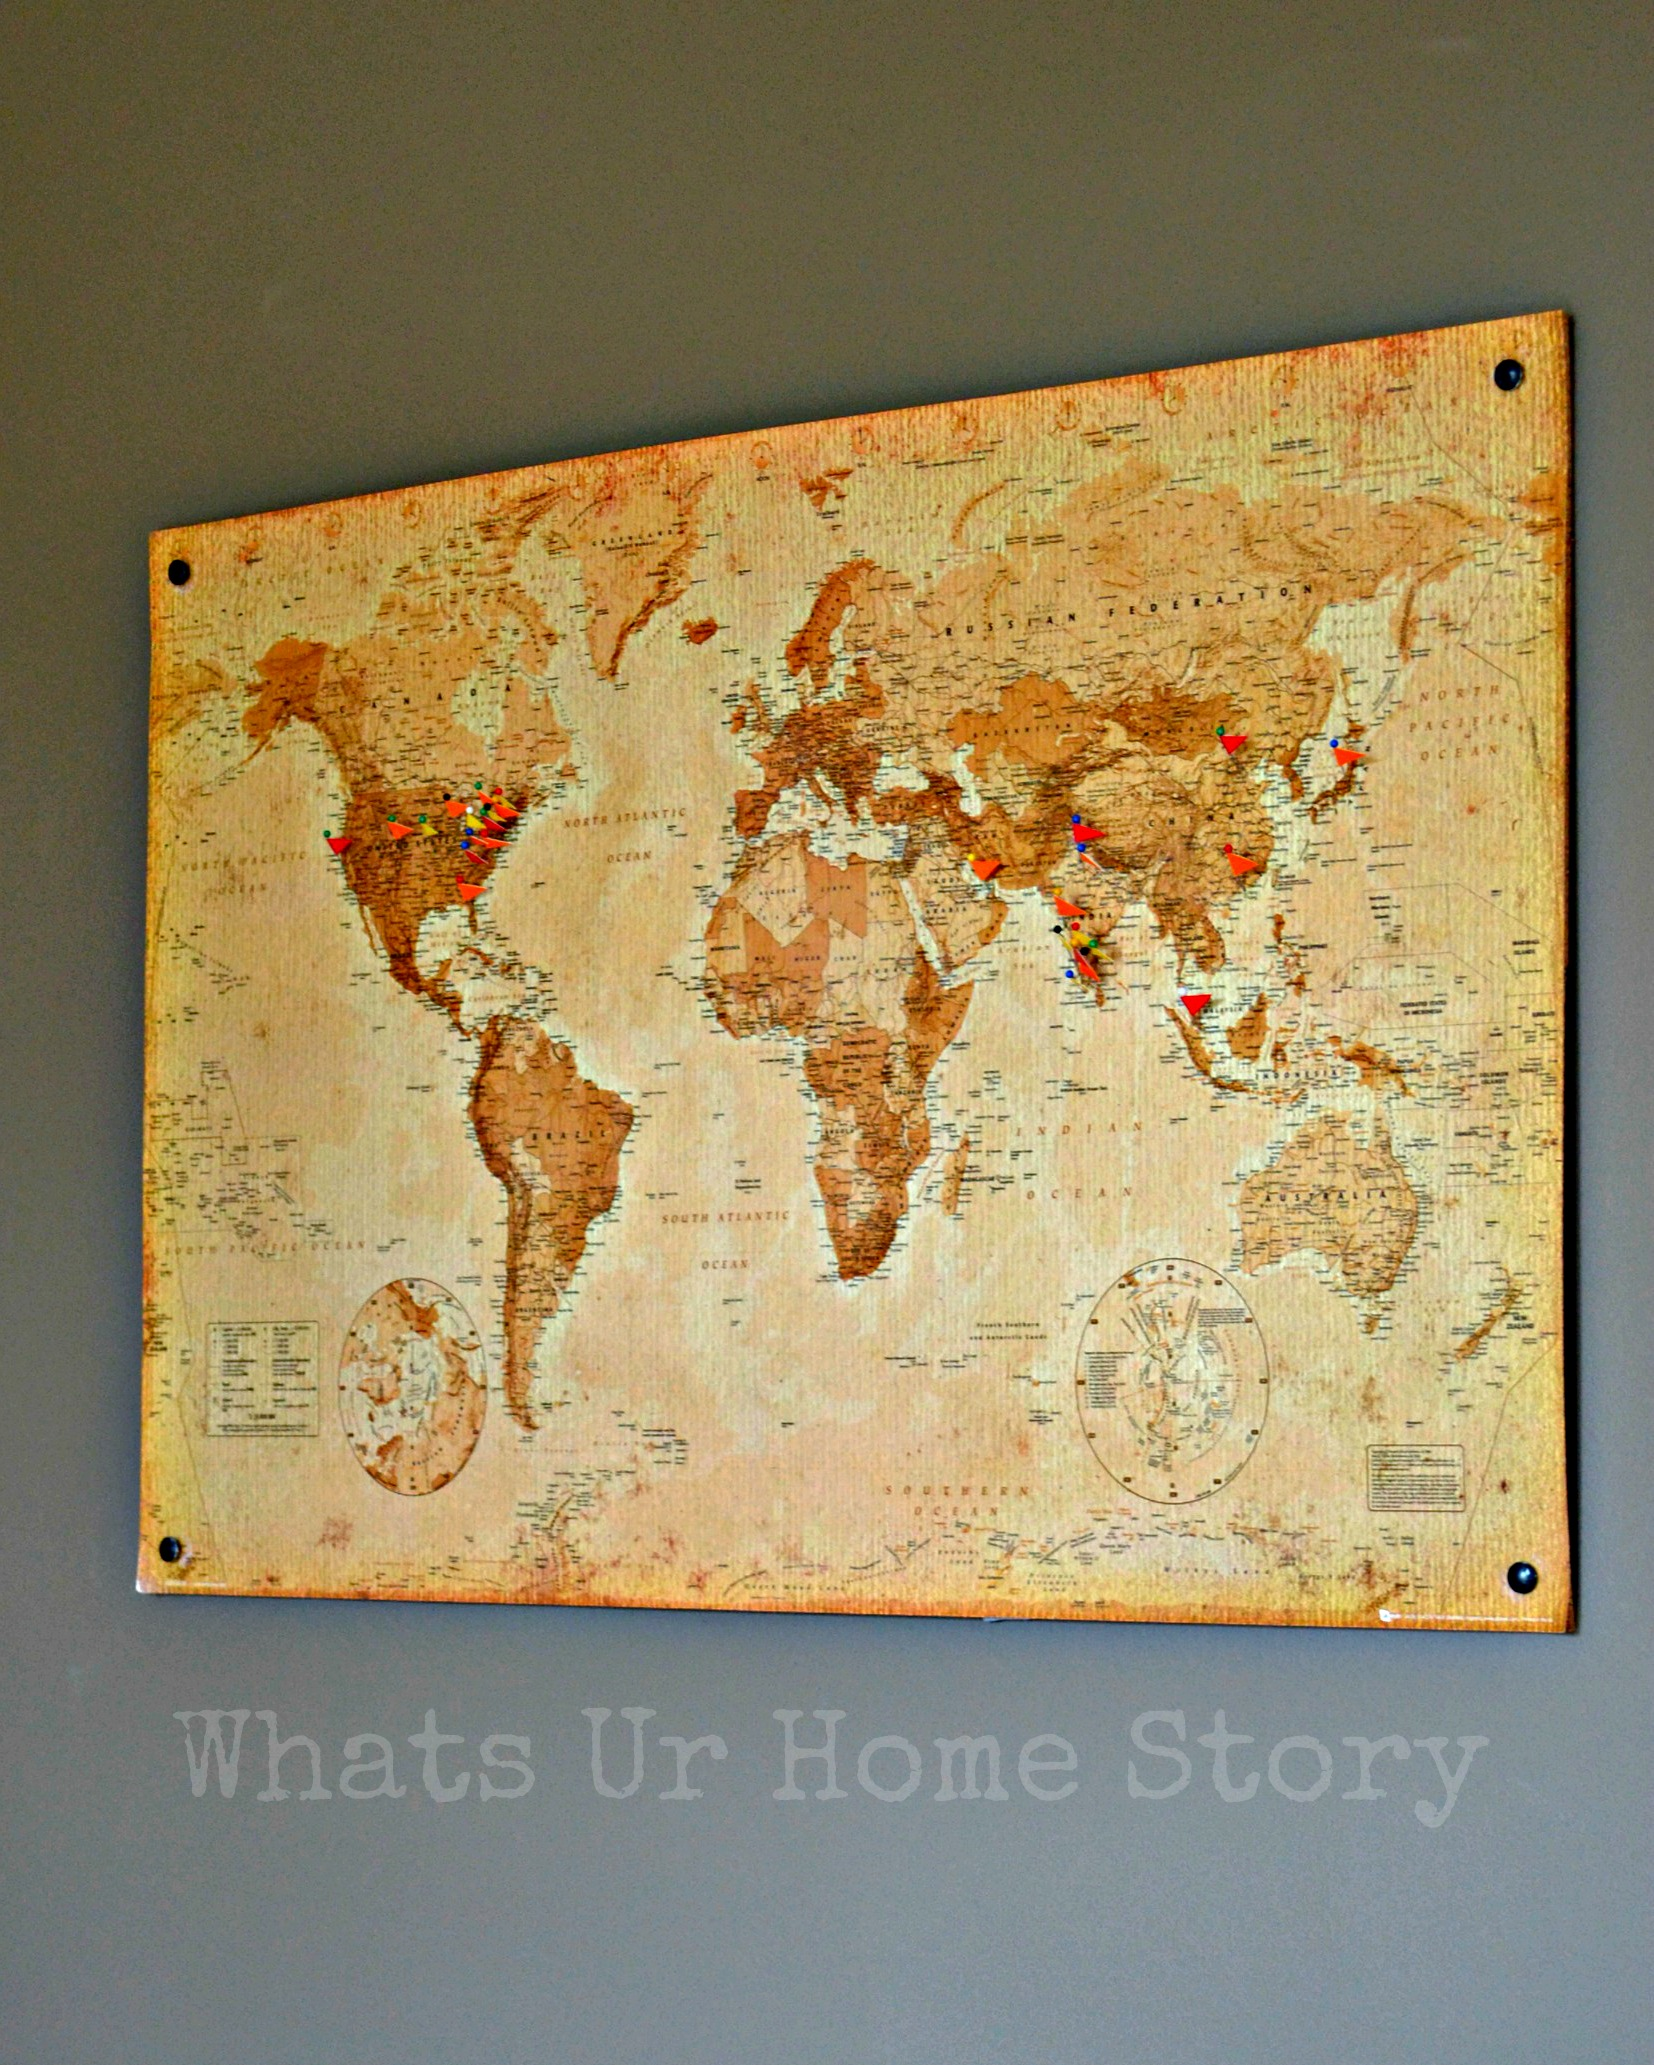 Diy cork board map whats ur home story gumiabroncs Choice Image